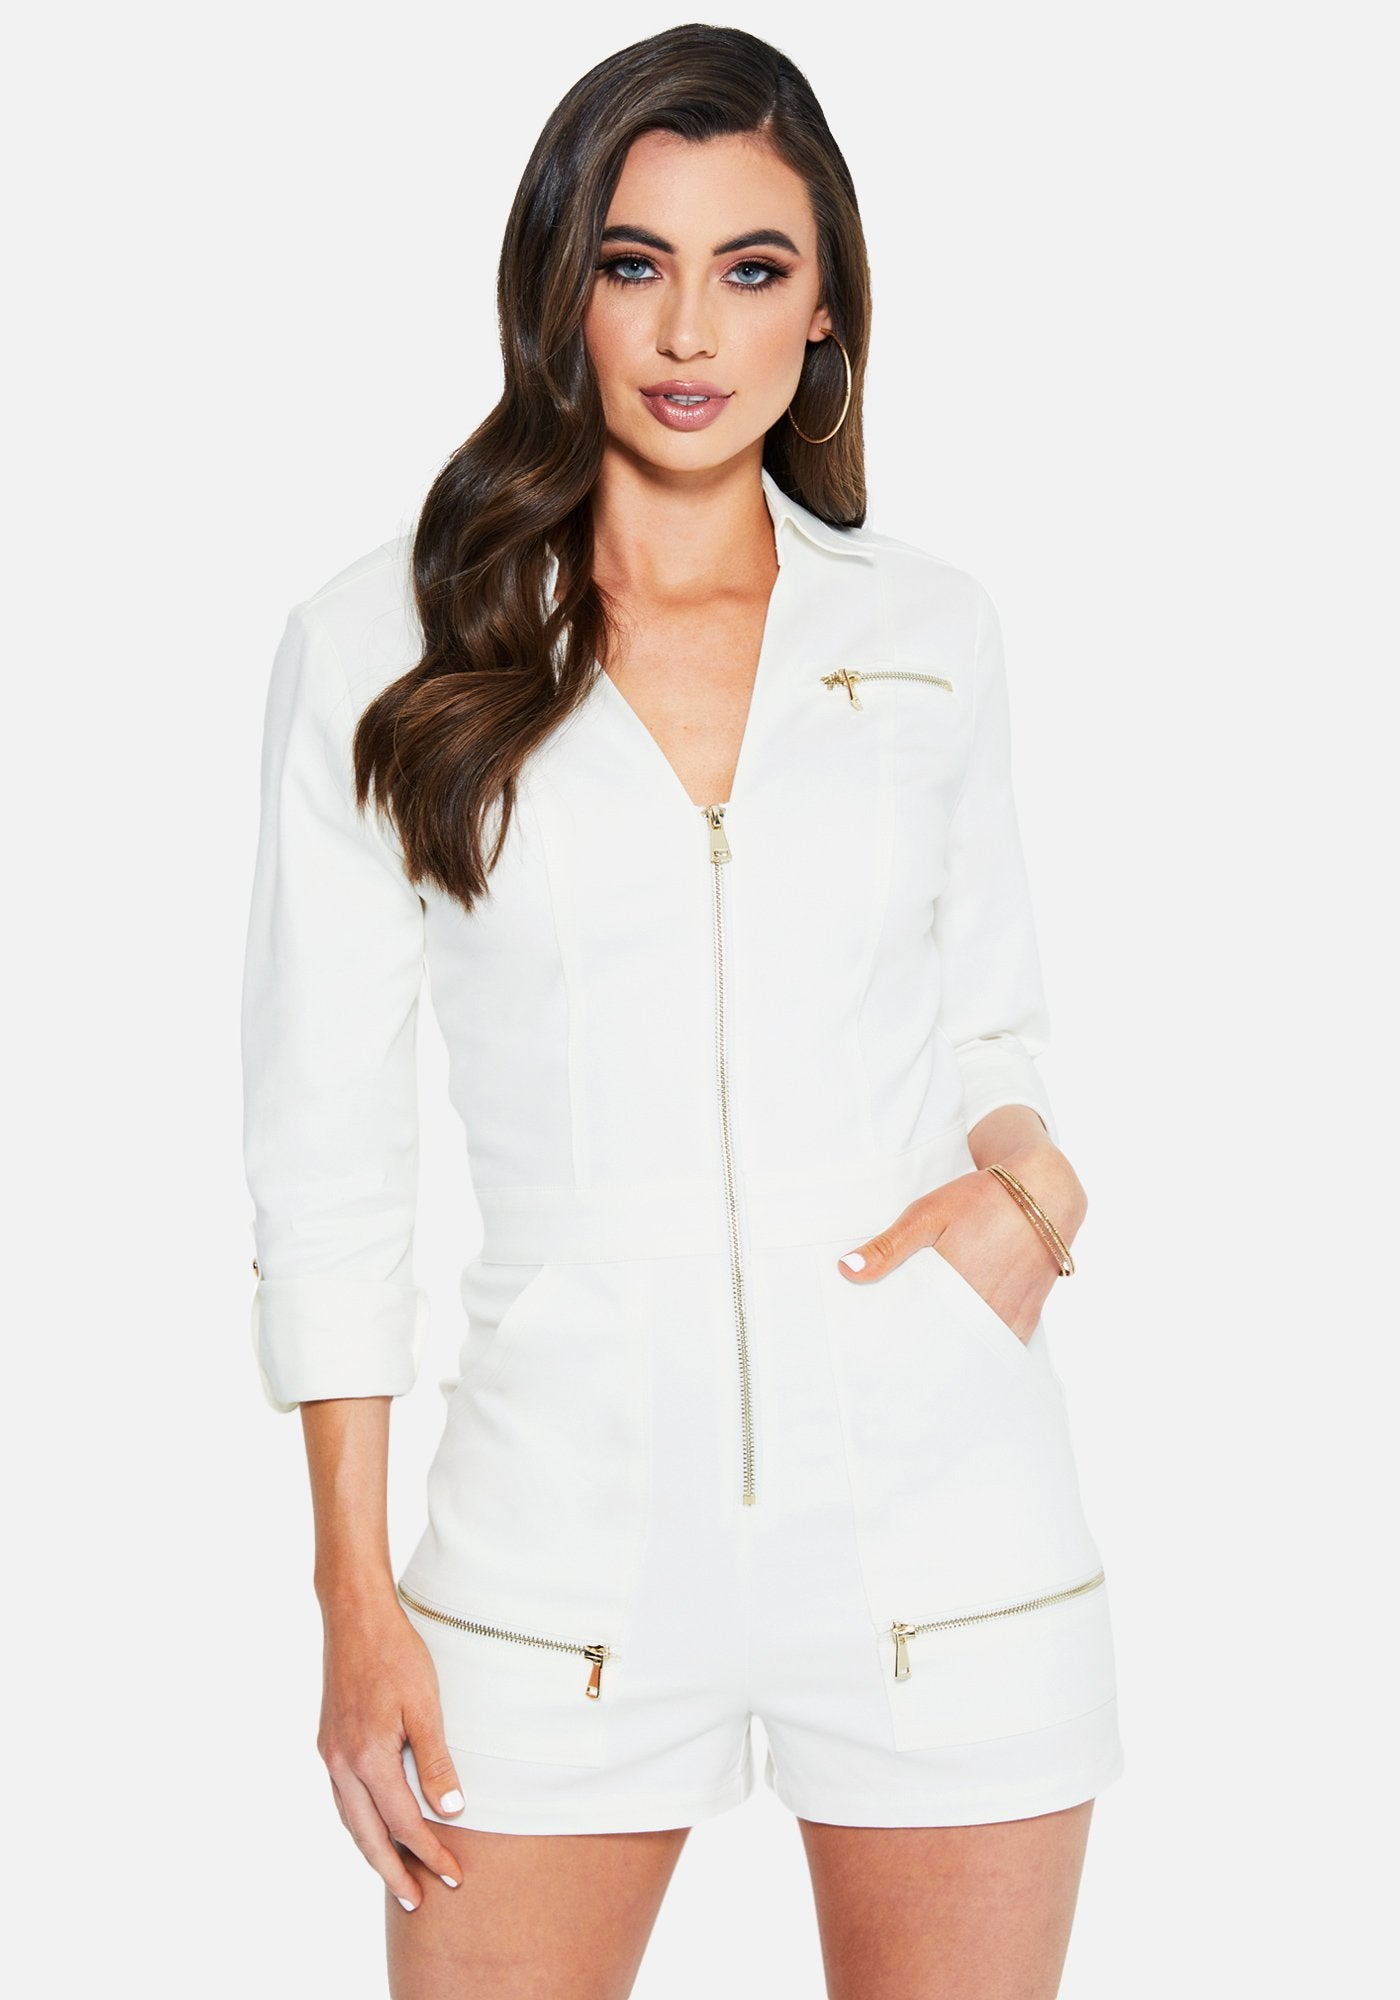 Image of Bebe Women's Zip Up Aviator Romper, Size XL in BRIGHT WHITE Cotton/Spandex